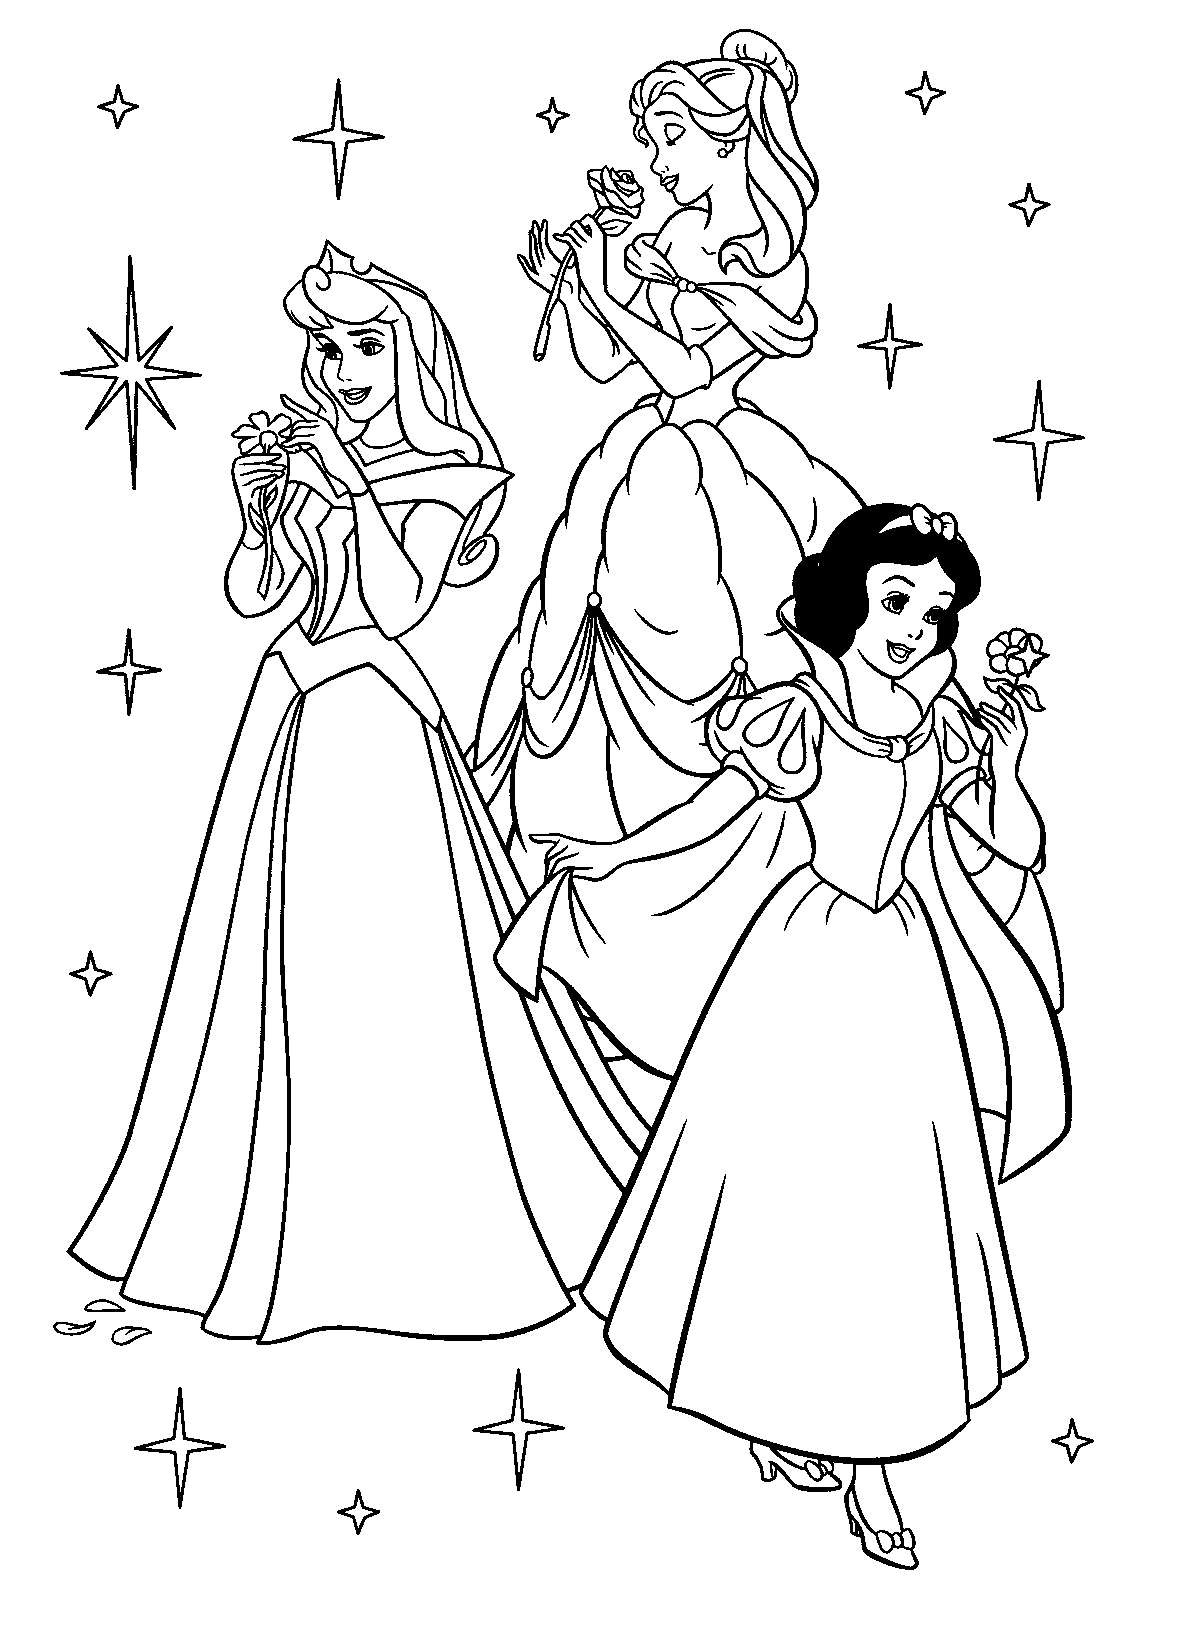 Colouring Pages Disney Princess Free : Free printable disney princess coloring pages for kids